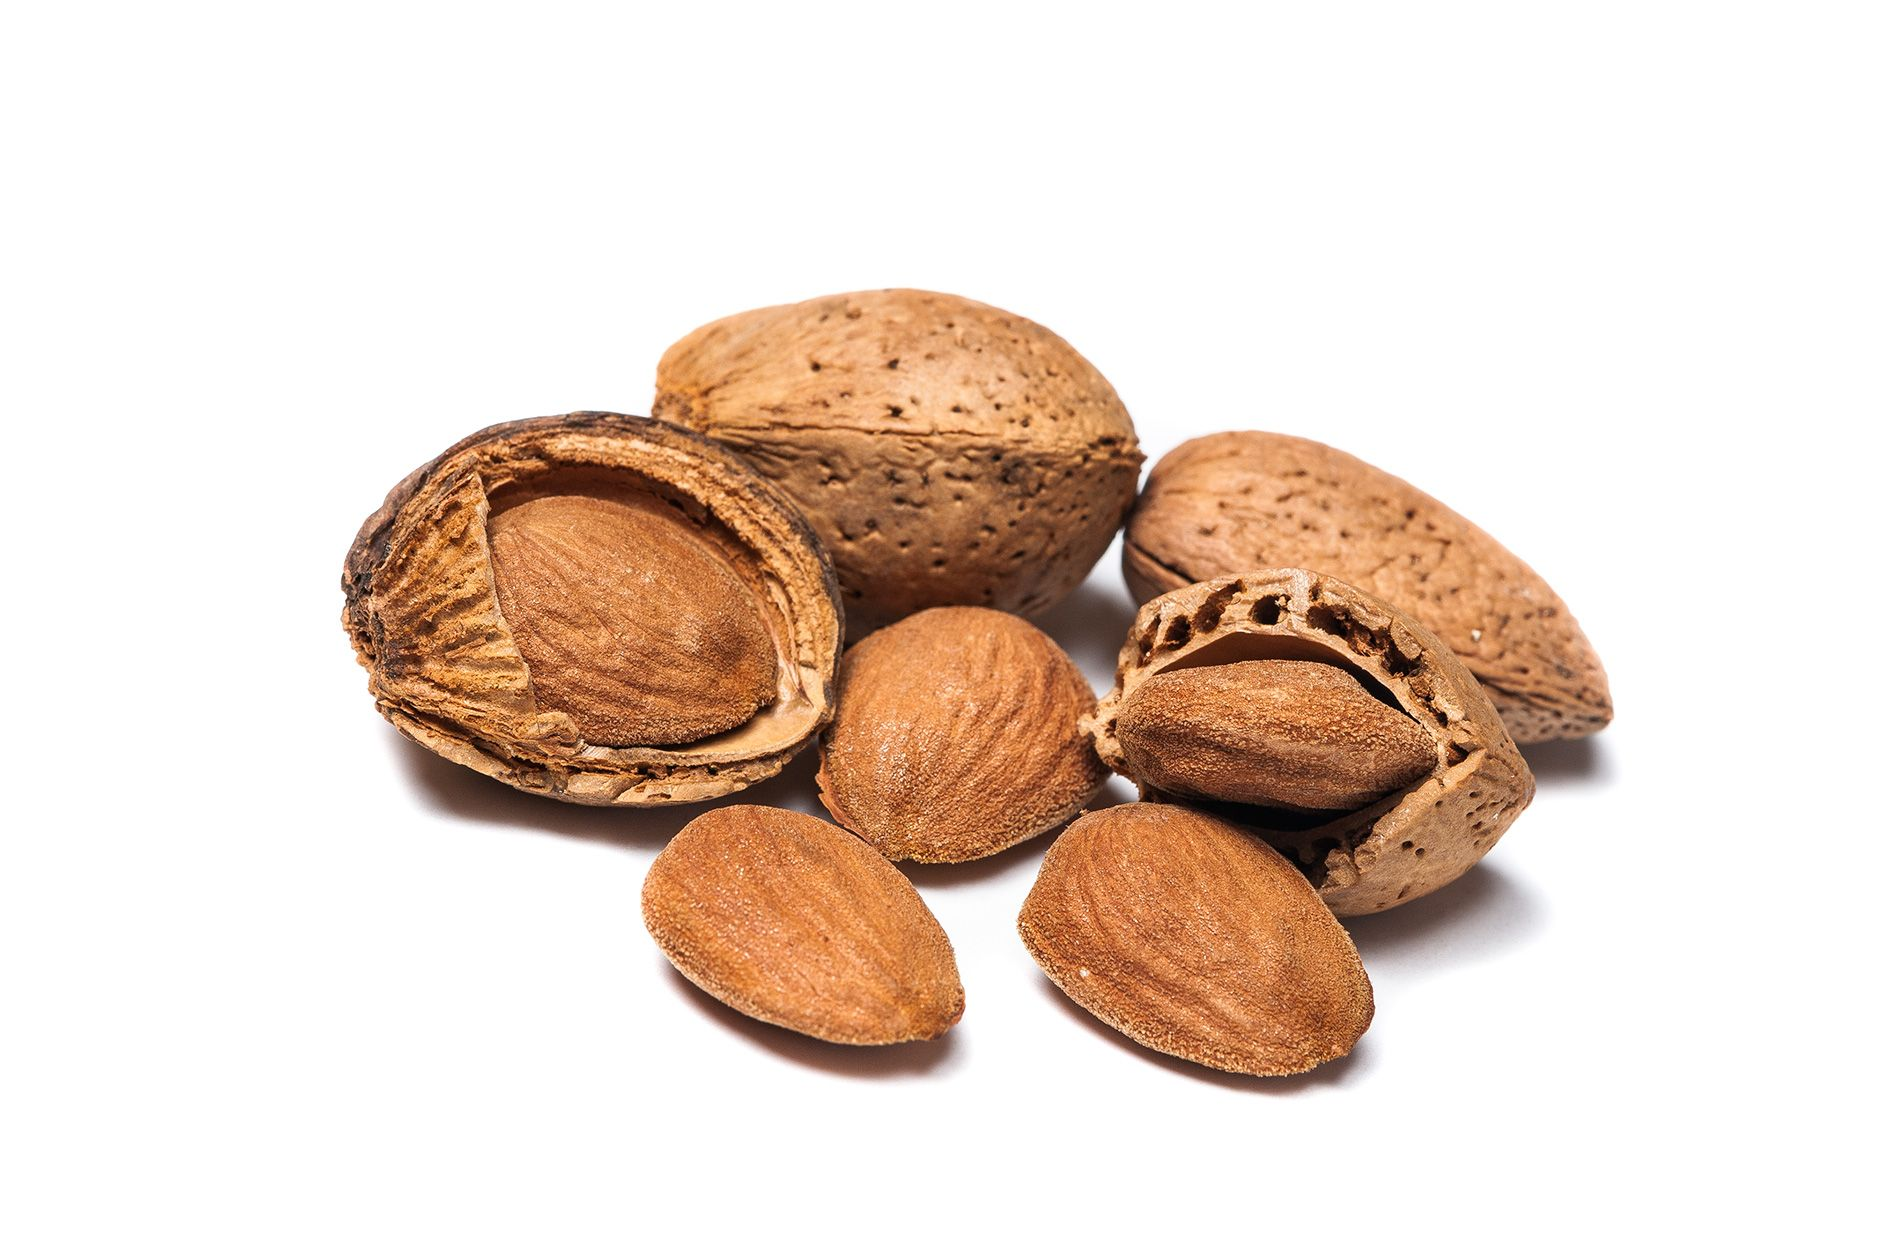 Almonds May Help Reduce Wrinkles